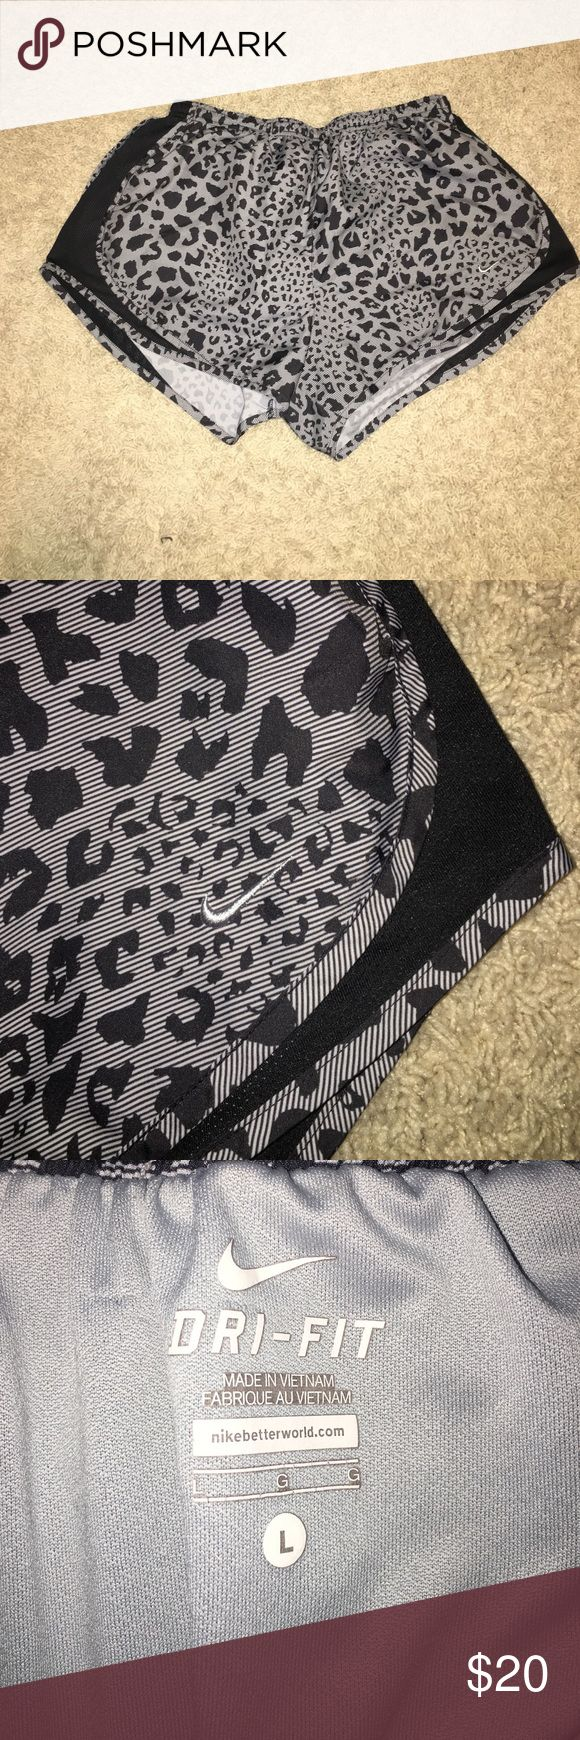 Nike leopard shorts size L Perfect condition. Size large. Bundle with some of my other sports items and save 10% Nike Shorts